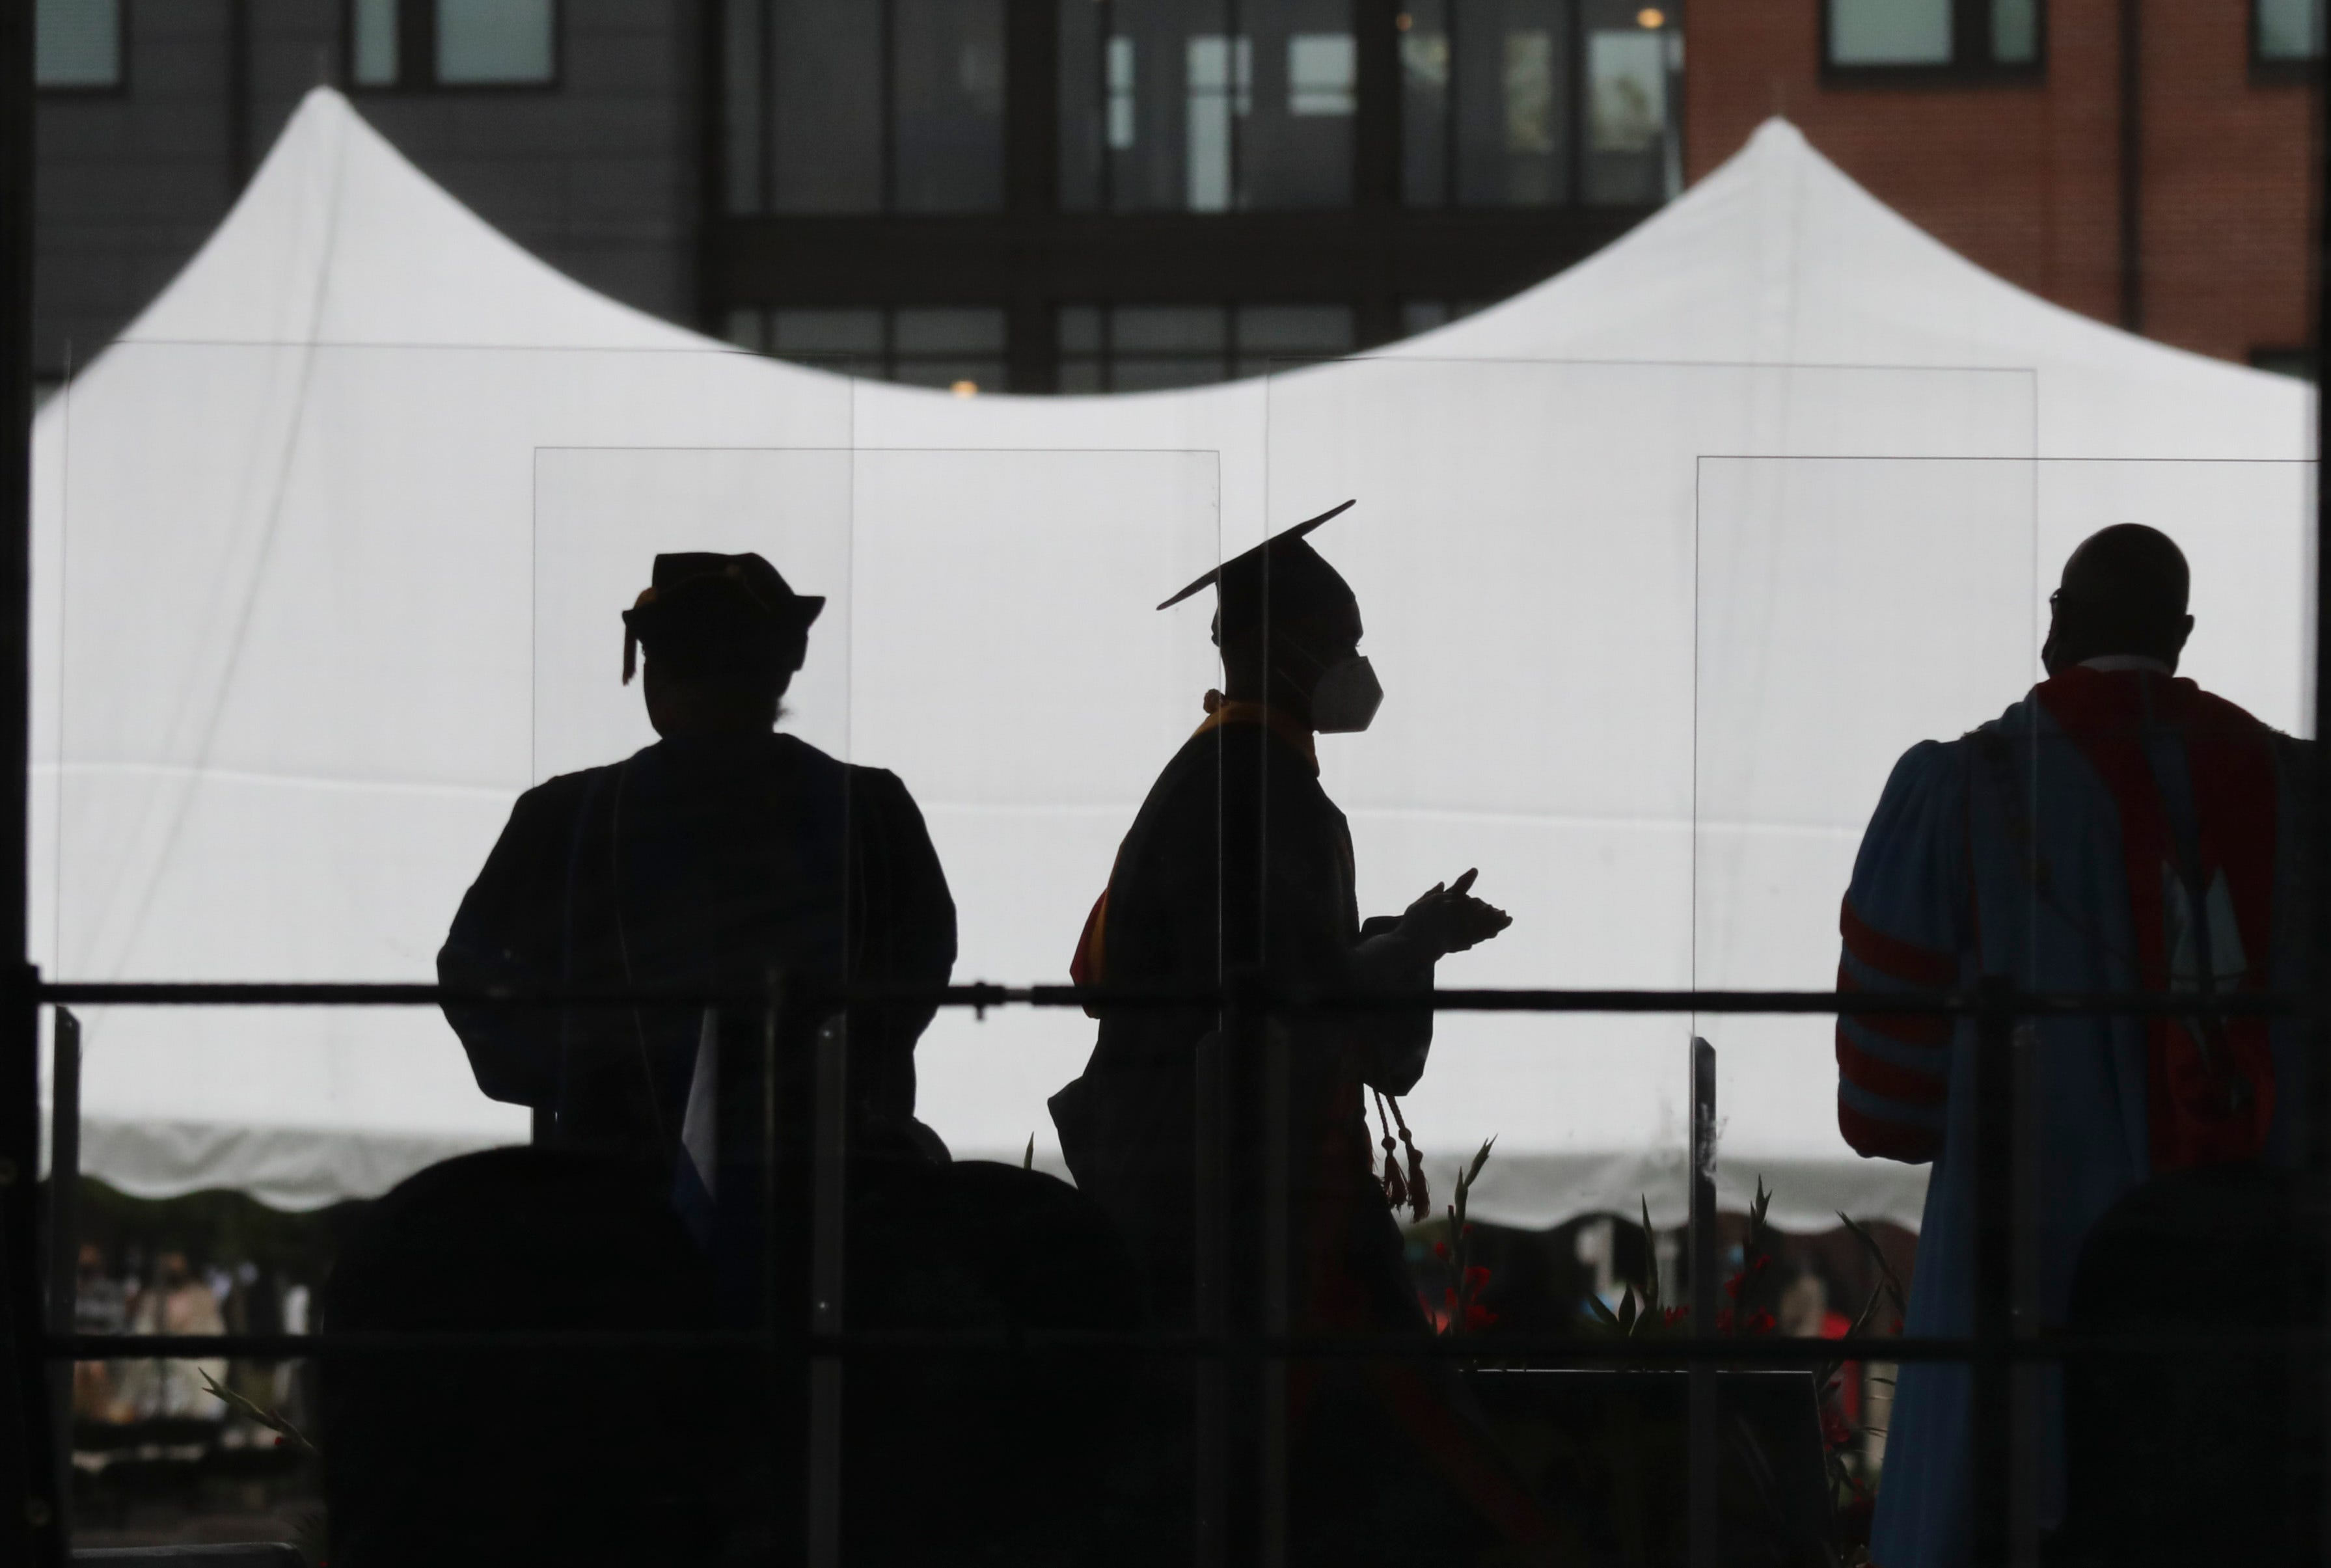 Struggling to find jobs in their field, many Delaware college seniors have to compromise